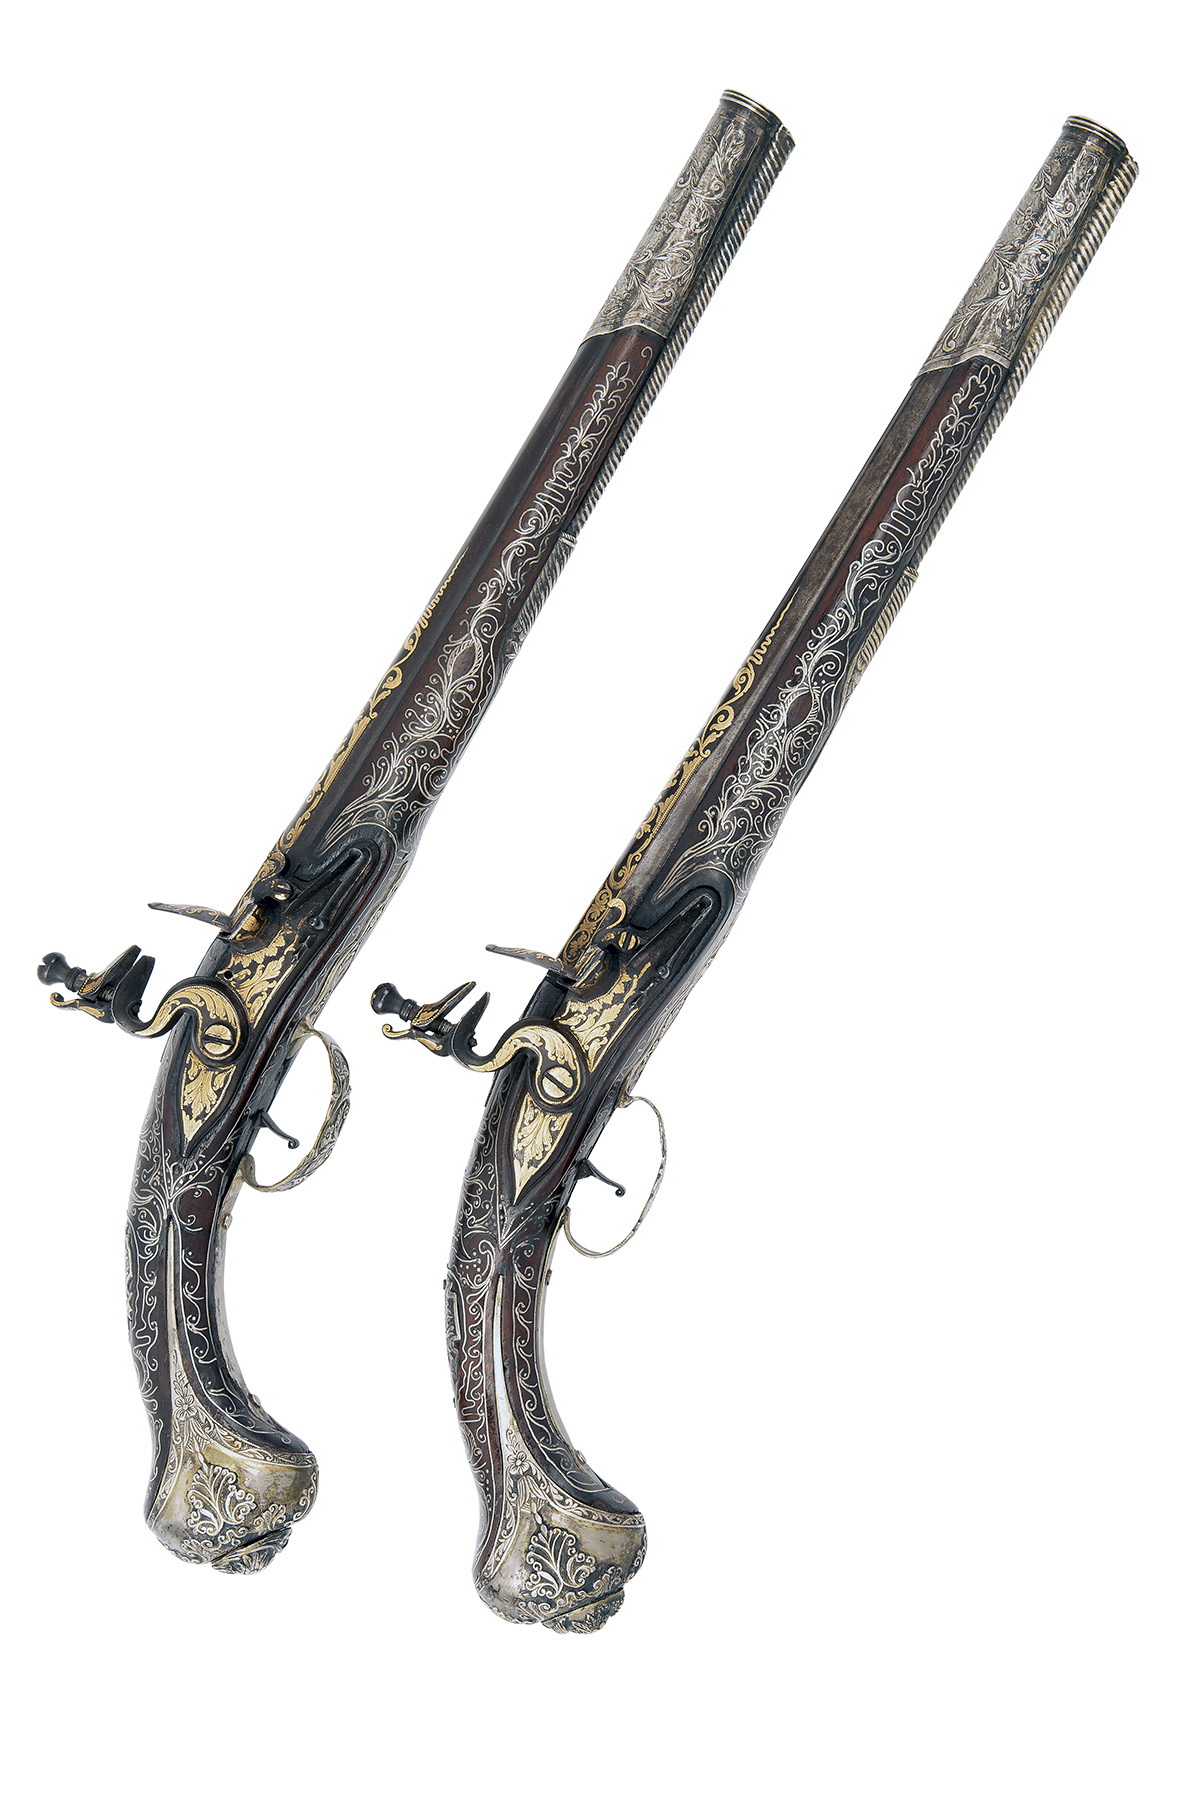 A GOOD PAIR OF 20-BORE FLINTLOCK OTTOMAN HOLSTER-PISTOLS WITH GILT DECORATION, UNSIGNED, no